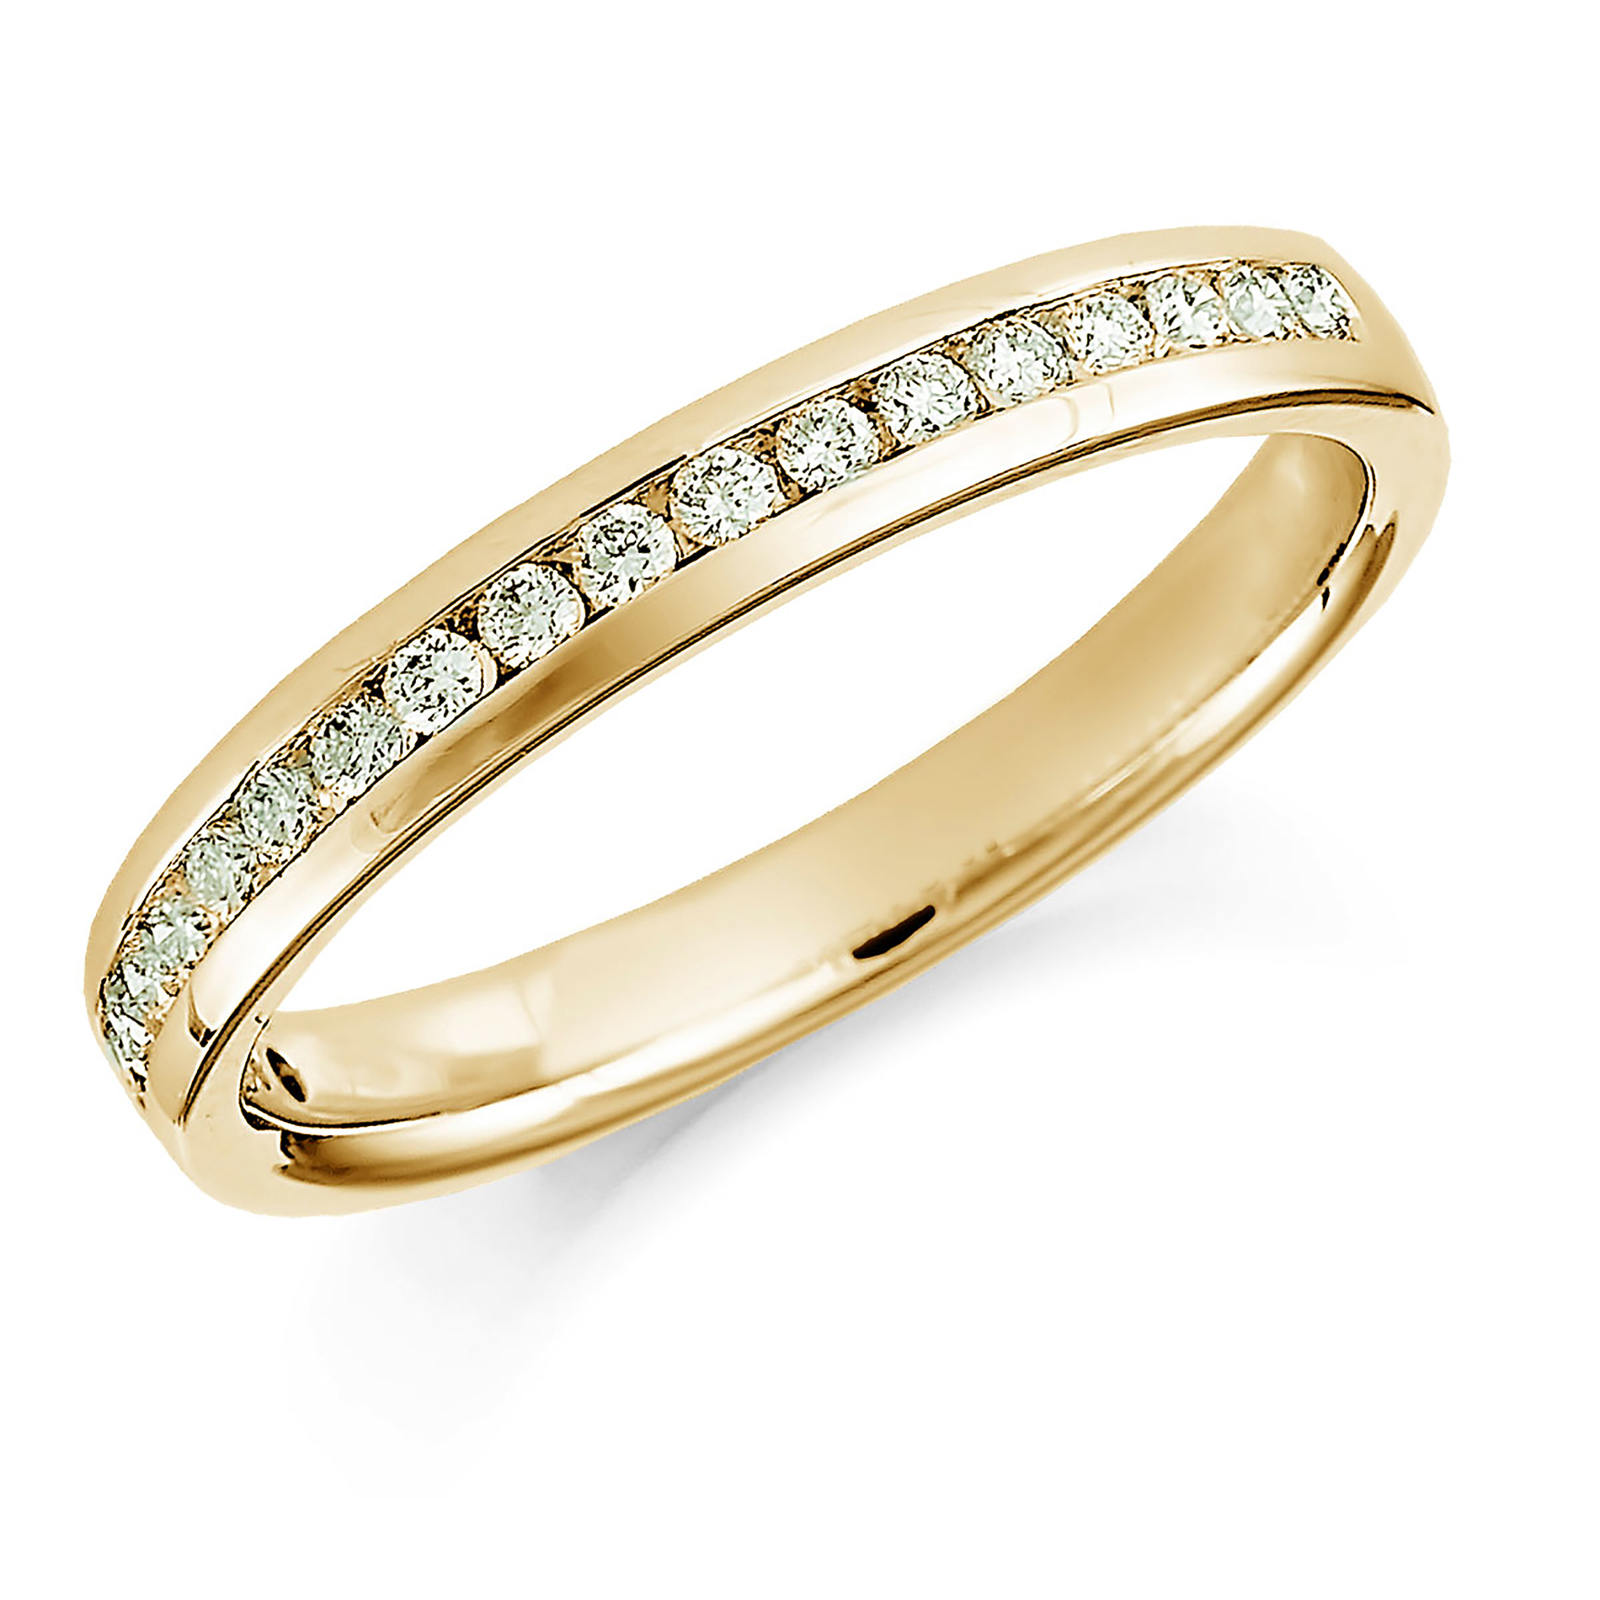 18ct Yellow Gold 0.20ct Round Brilliant Cut Channel Set Half Eternity Ring